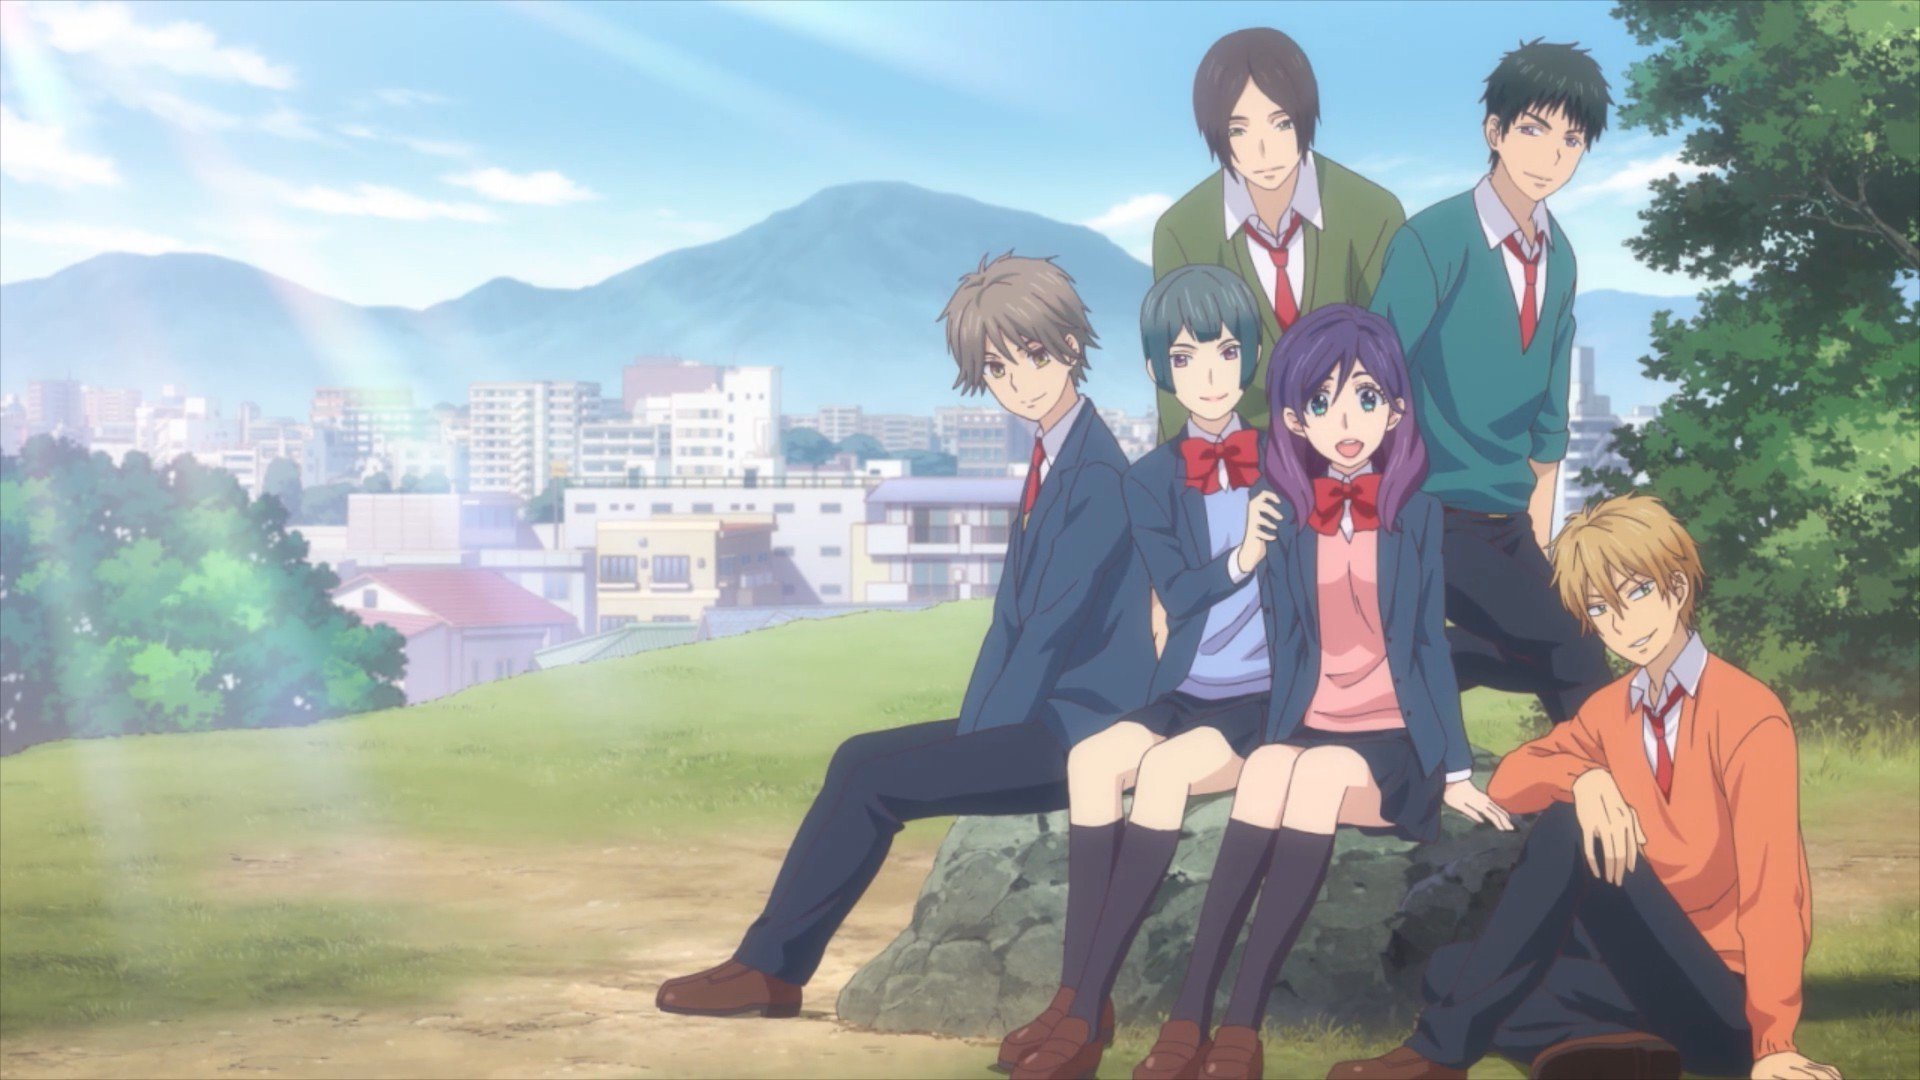 Cute Anime Wallpapers That You May Know Kiss Him Not Me Review Anime Rice Digital Rice Digital